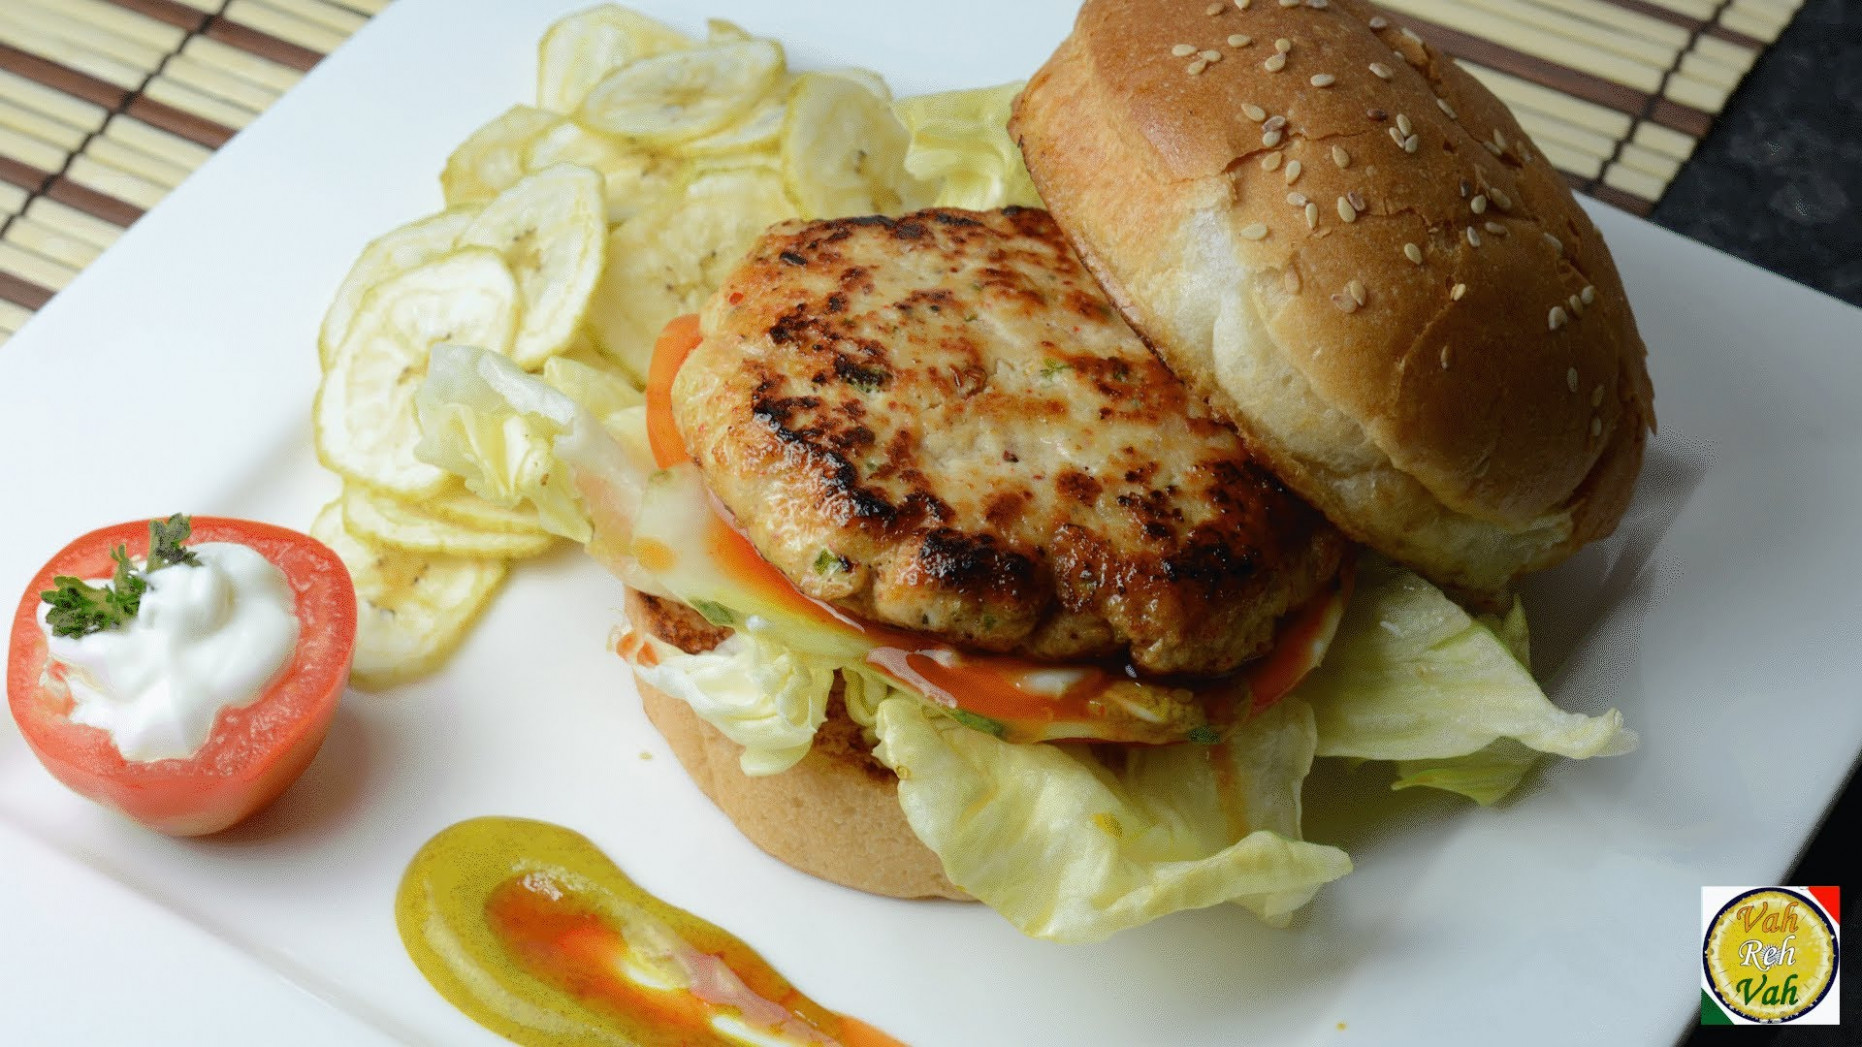 Chicken Burger - By VahChef @ VahRehVah.com - TotesWild ..